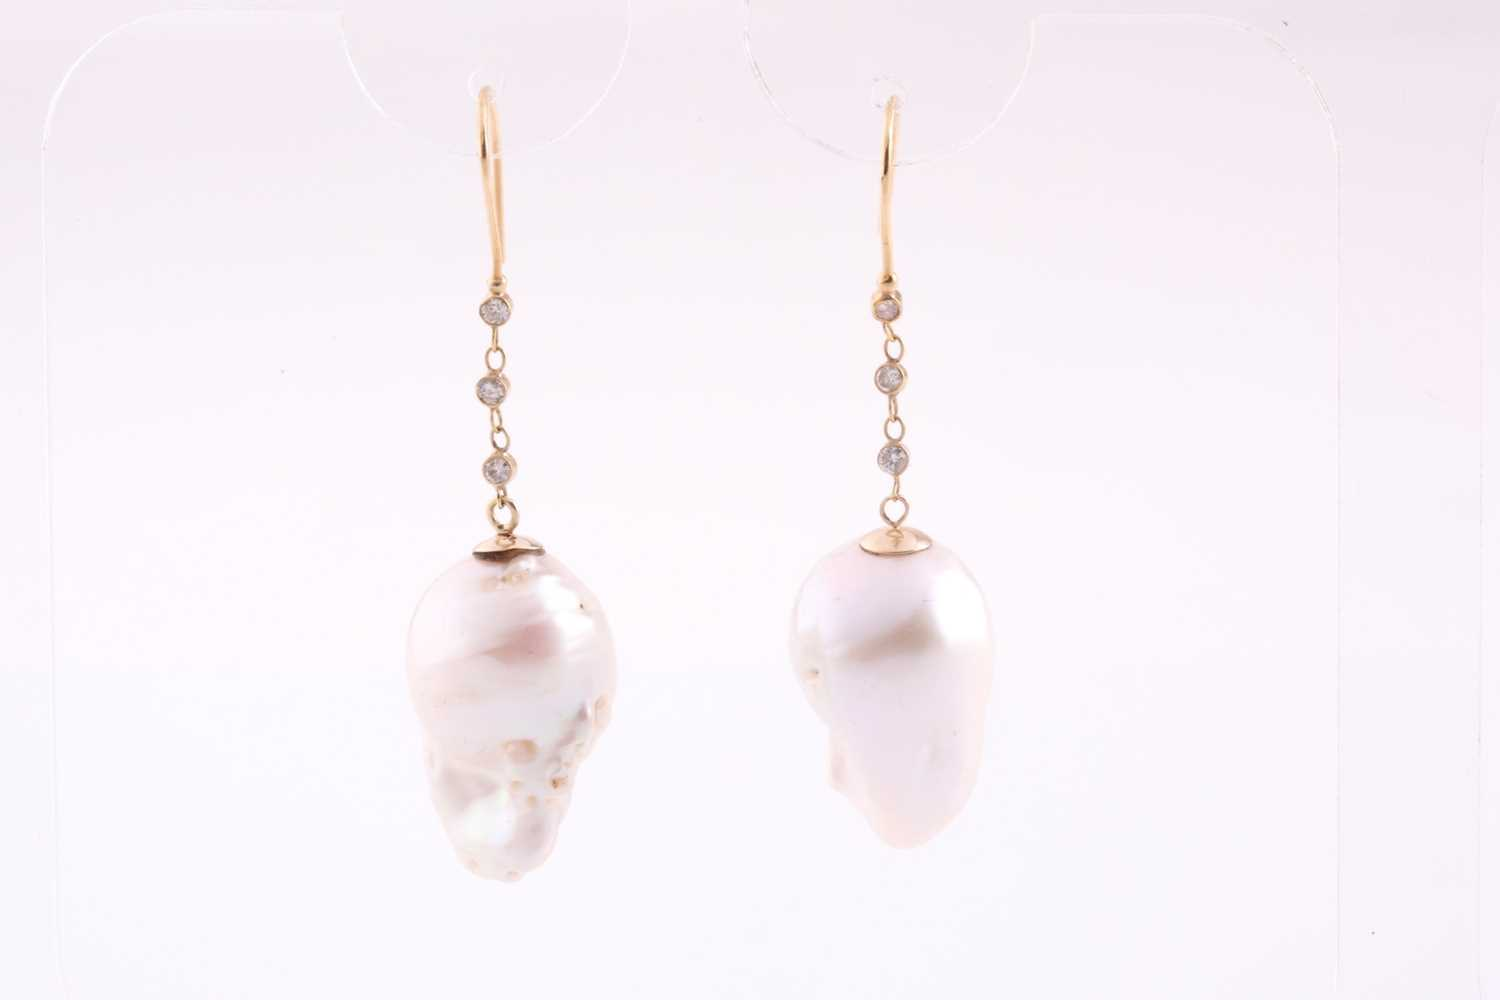 A pair of Baroque pearl and diamond drop earrings, the pearls drill mounted beneath a chain of three - Image 2 of 2